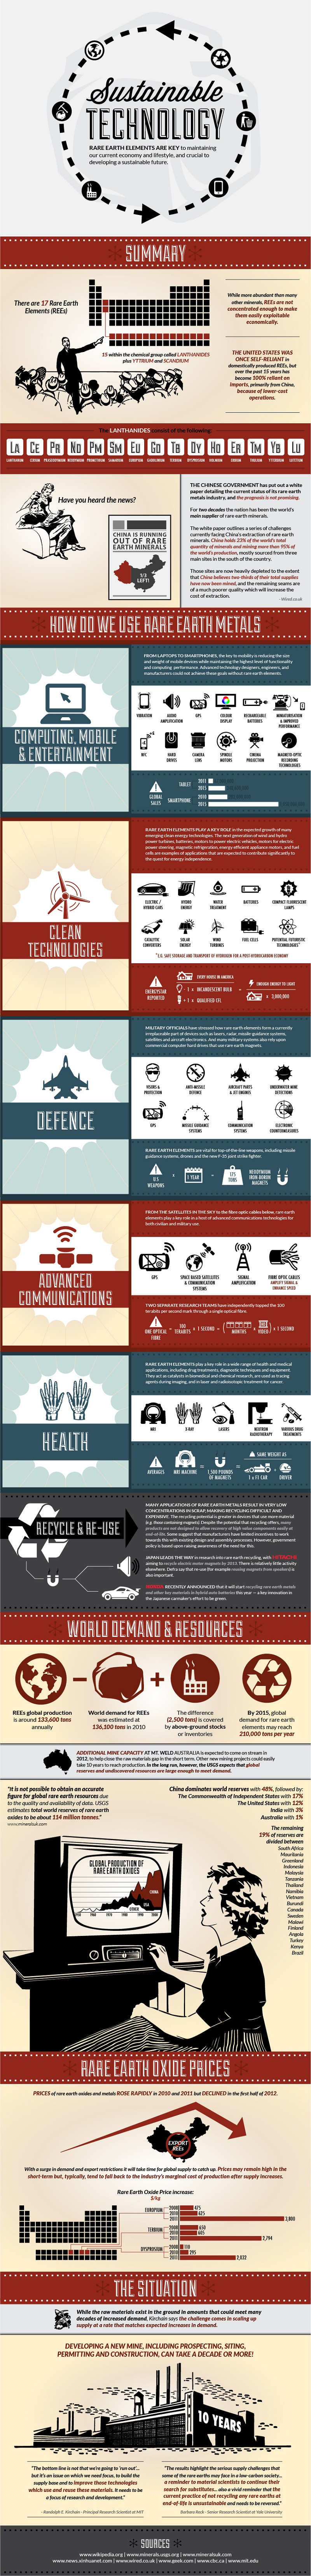 Sustainable Technology infographic